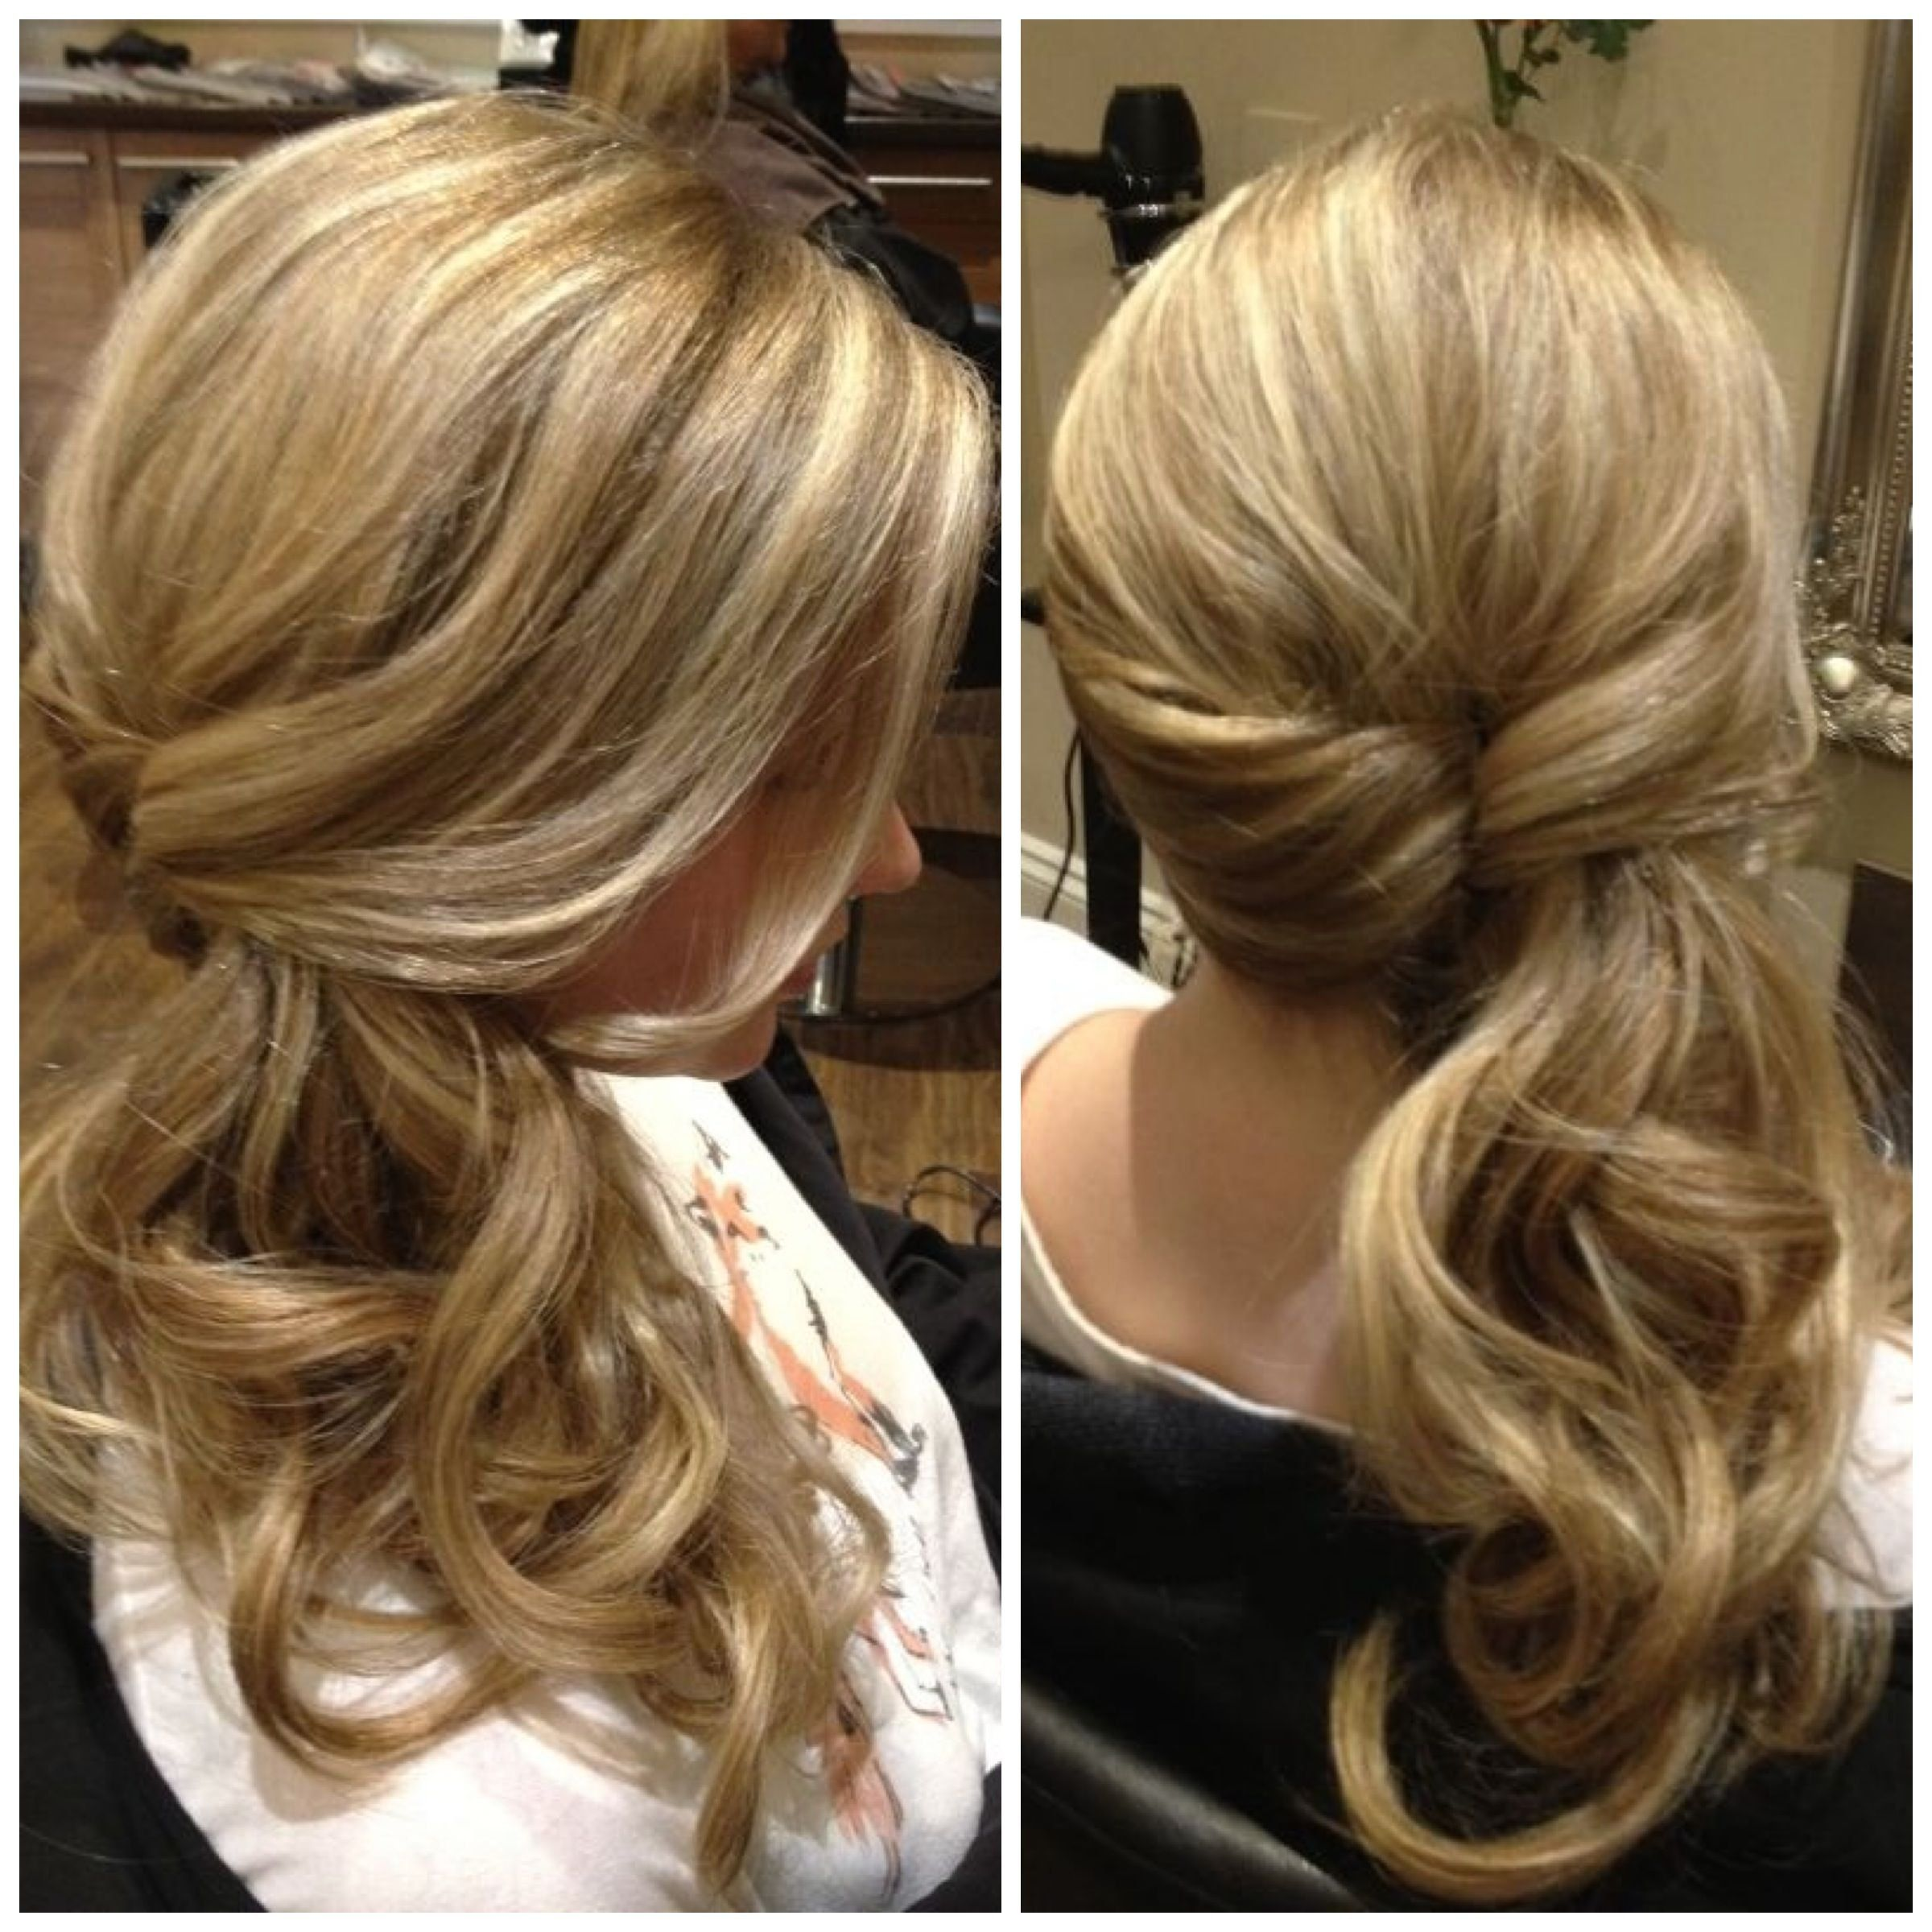 Hair For Prom   1000   Side ponytail hairstyles ...